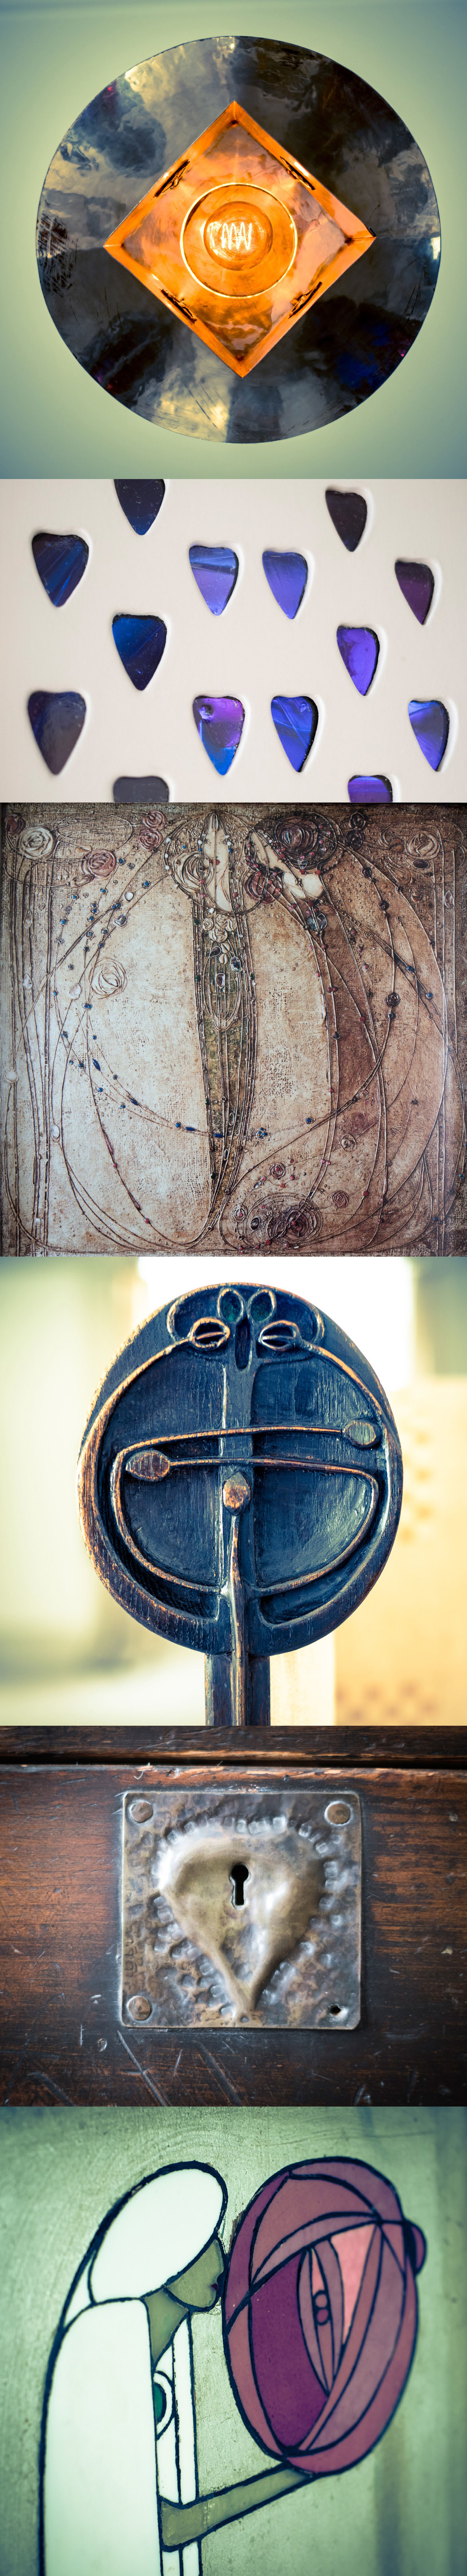 Details of Charles Rennie Mackintosh by McAteer Photograph for GCMB